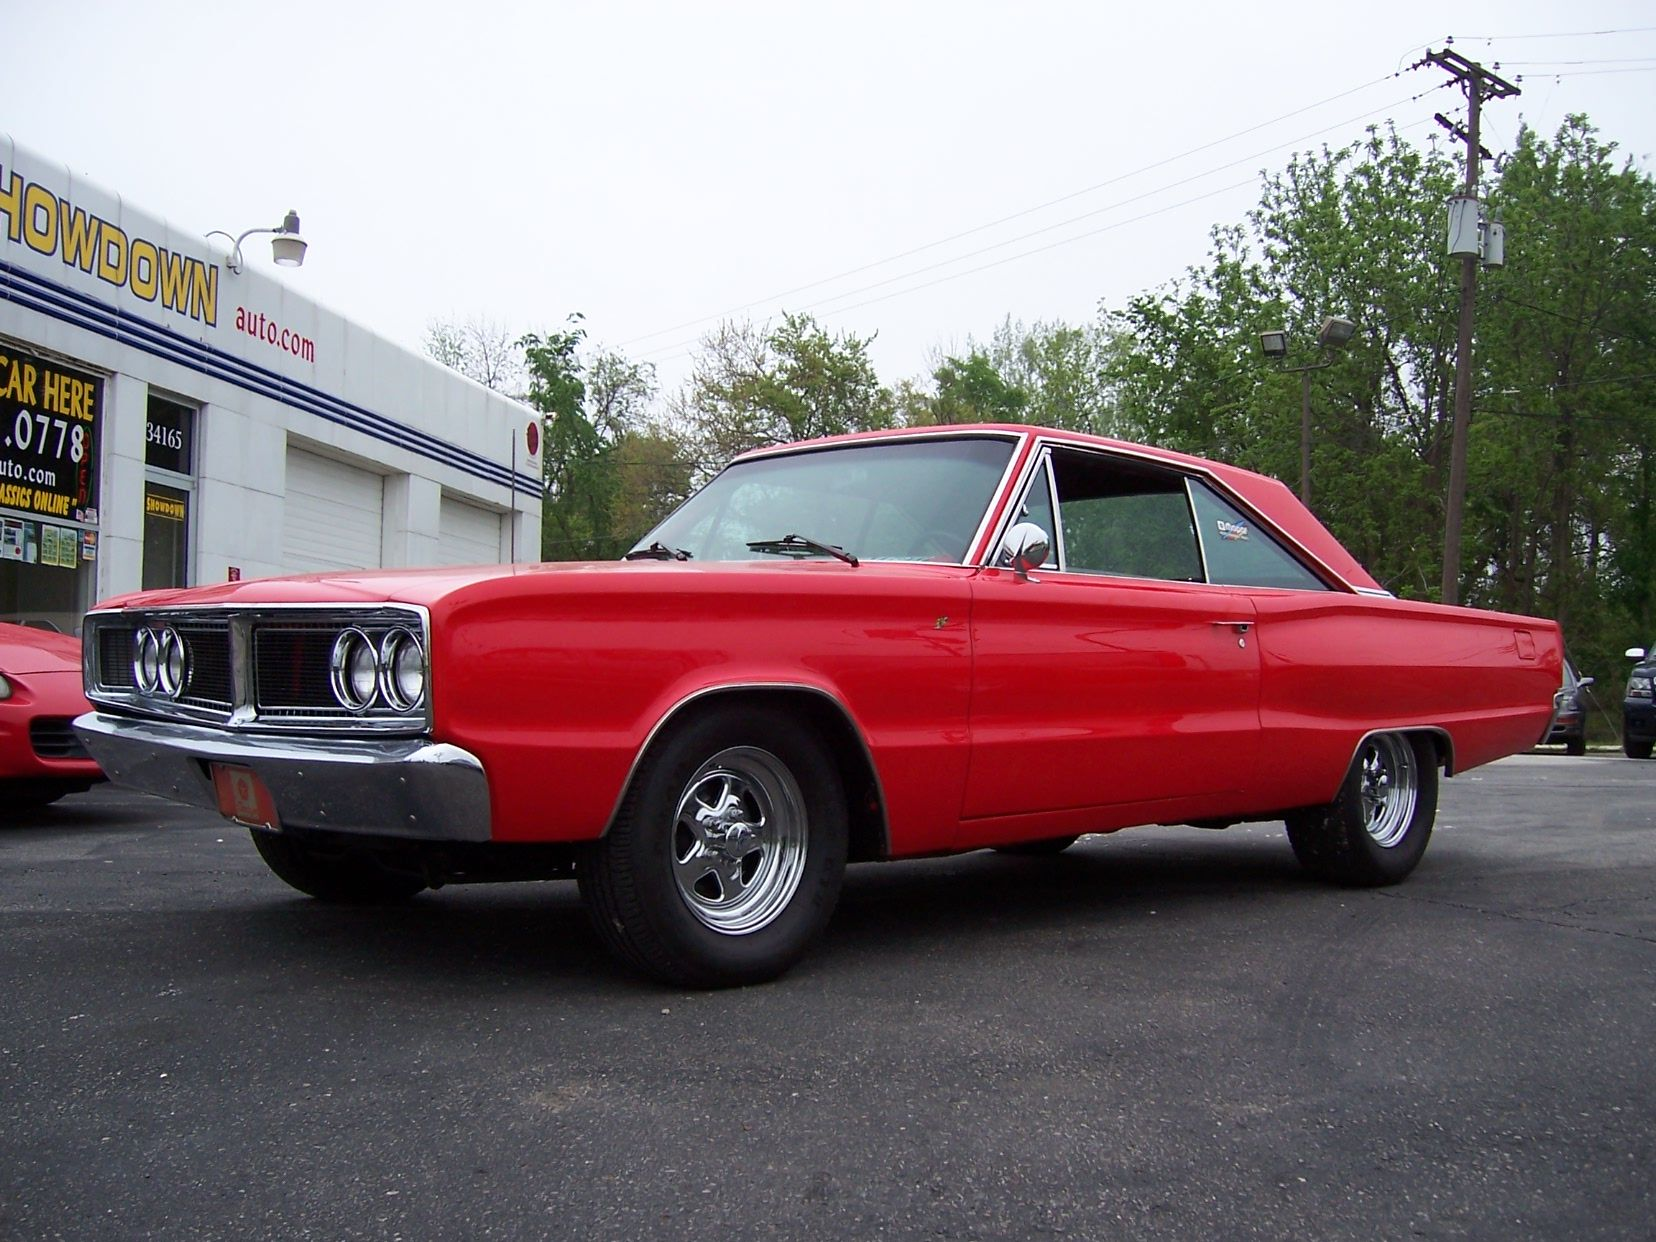 66 coronet 500 we totally had this car in yellow